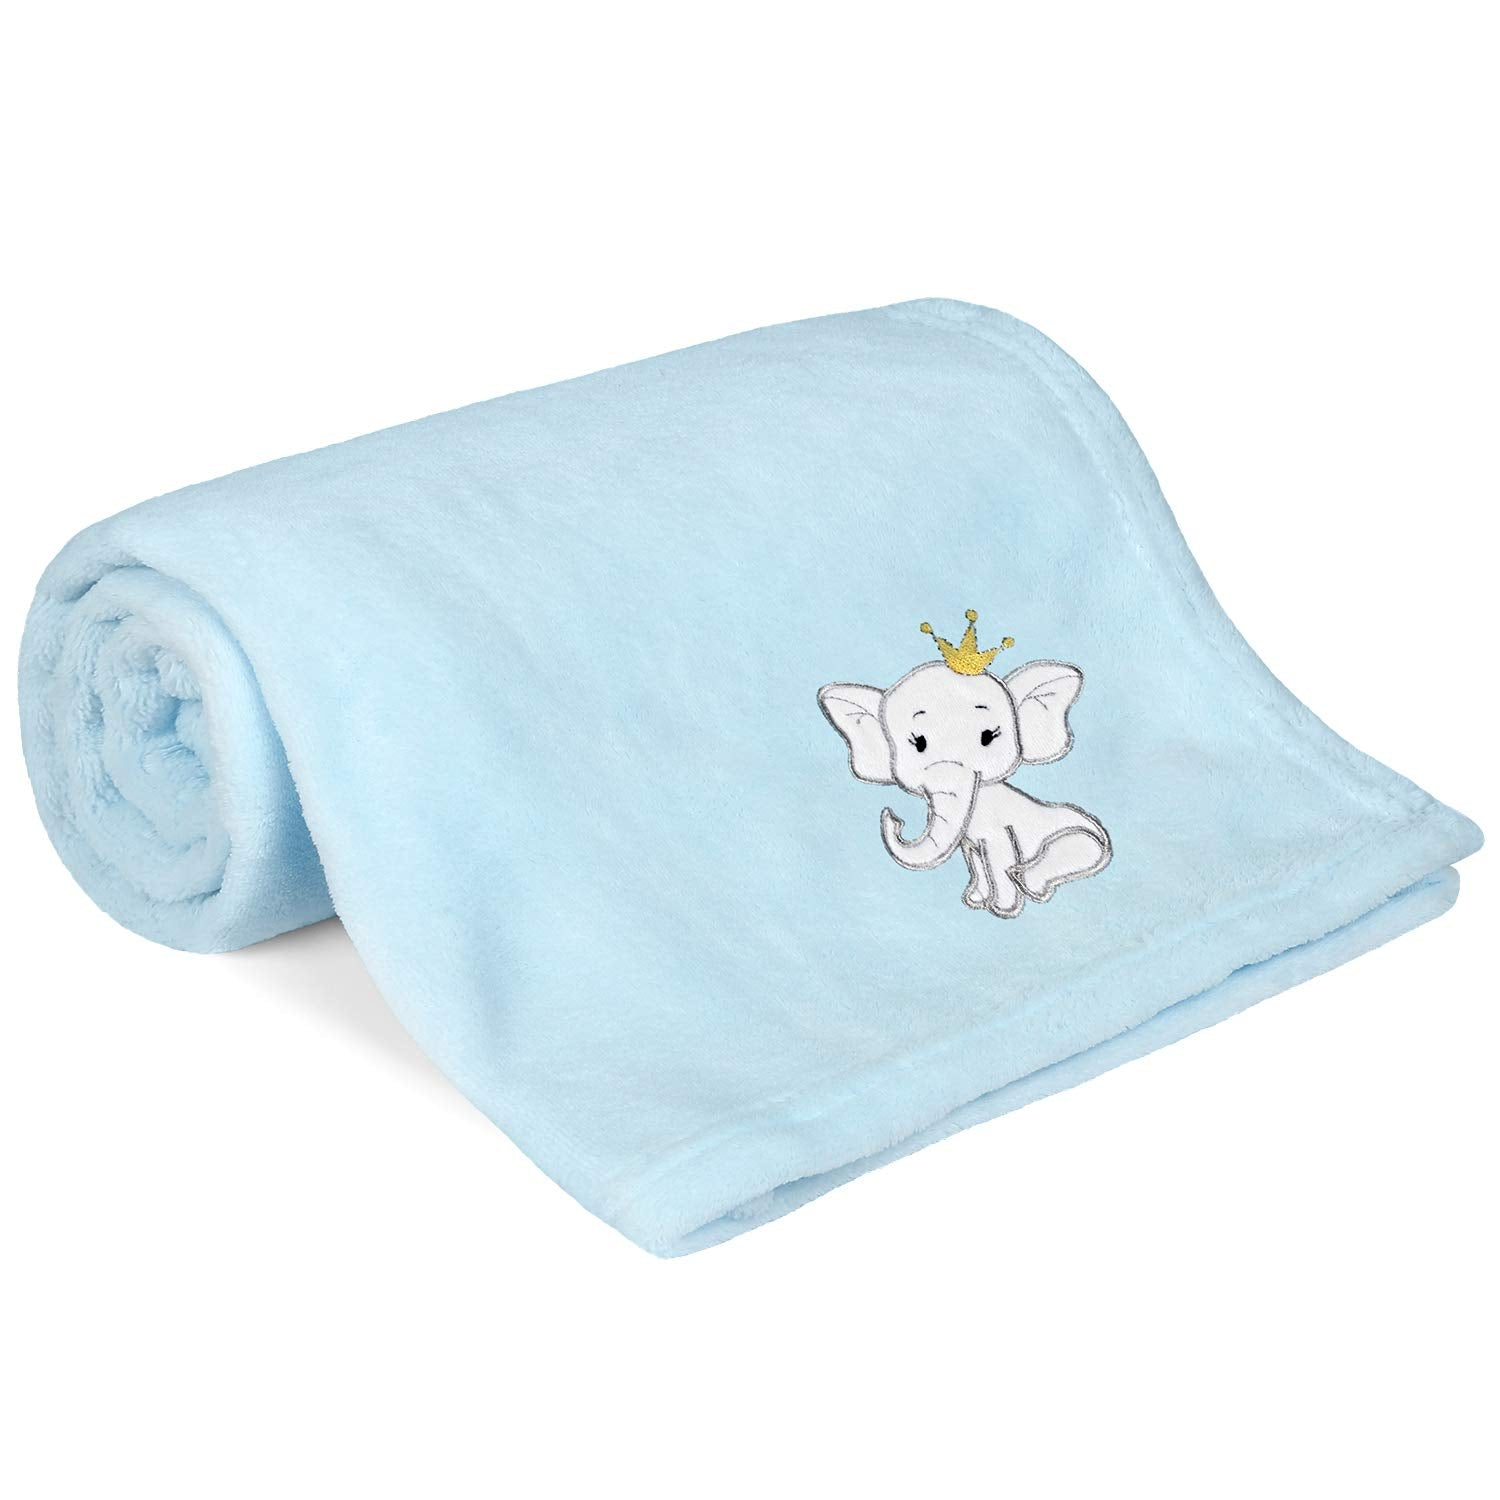 "All Season Coral Fleece Plush Baby Blanket 30"" x 40"""